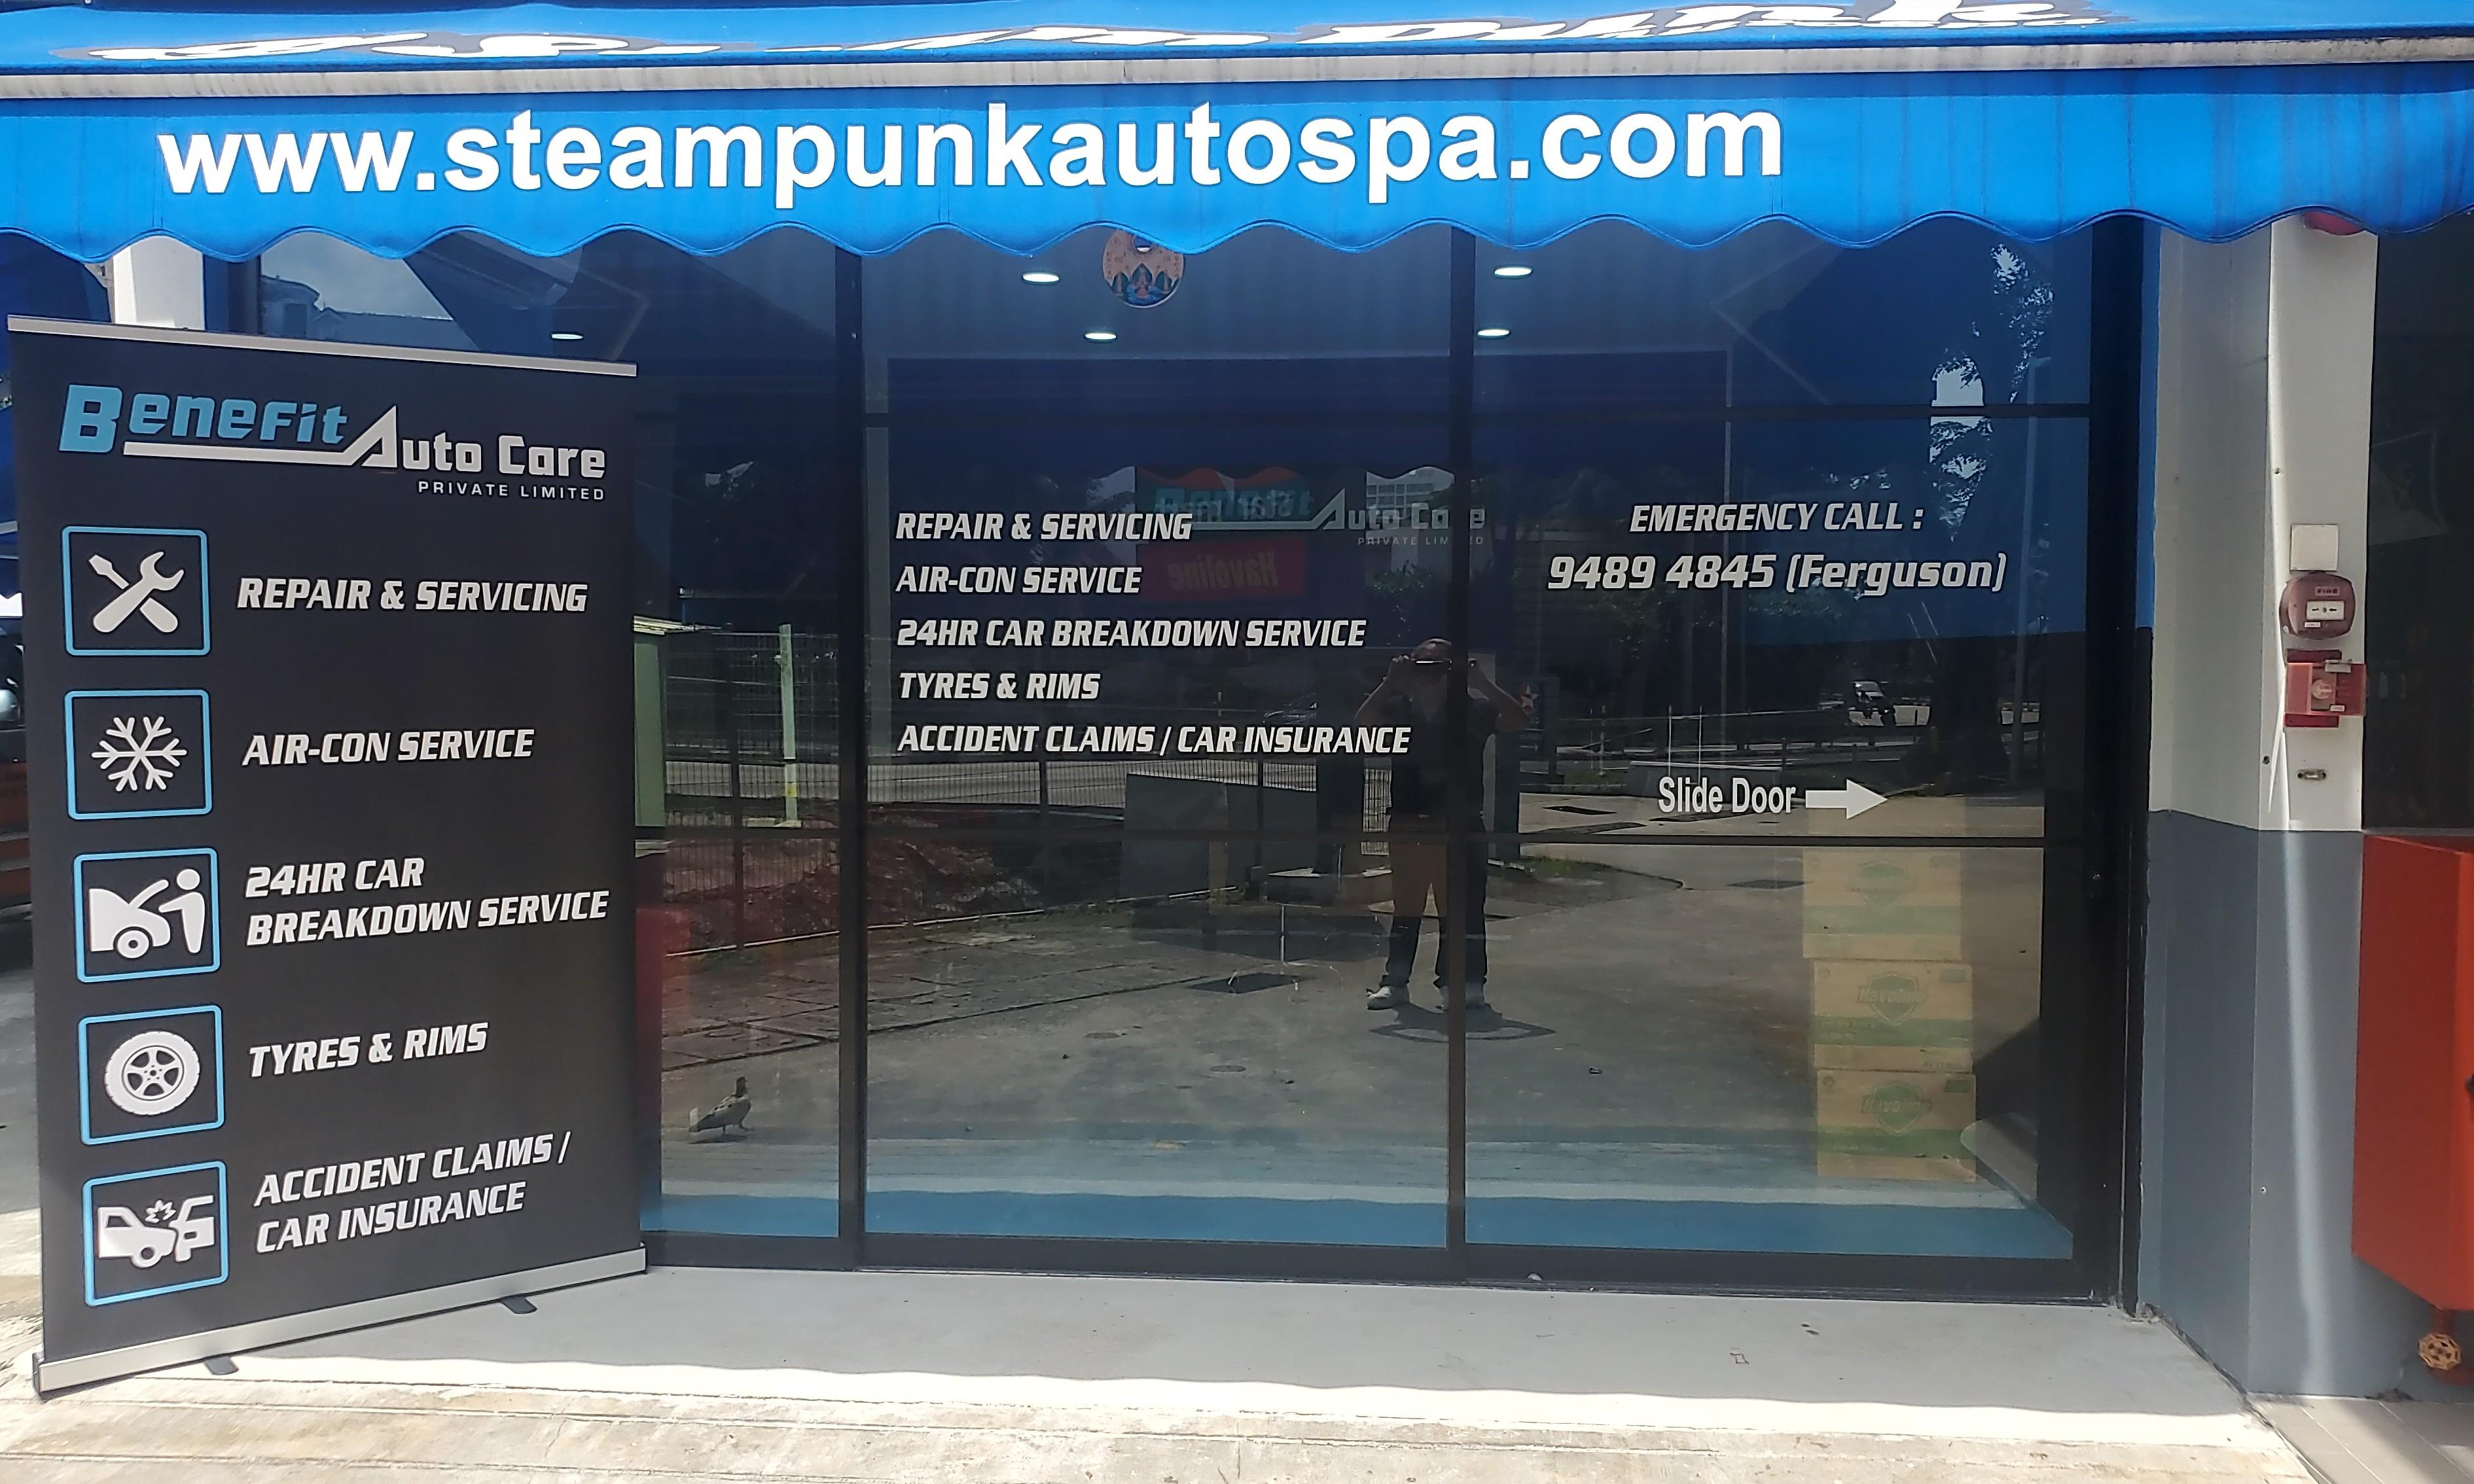 vehicle car service maintenance ( included car washing and vacuum ) 930am to 830 pm